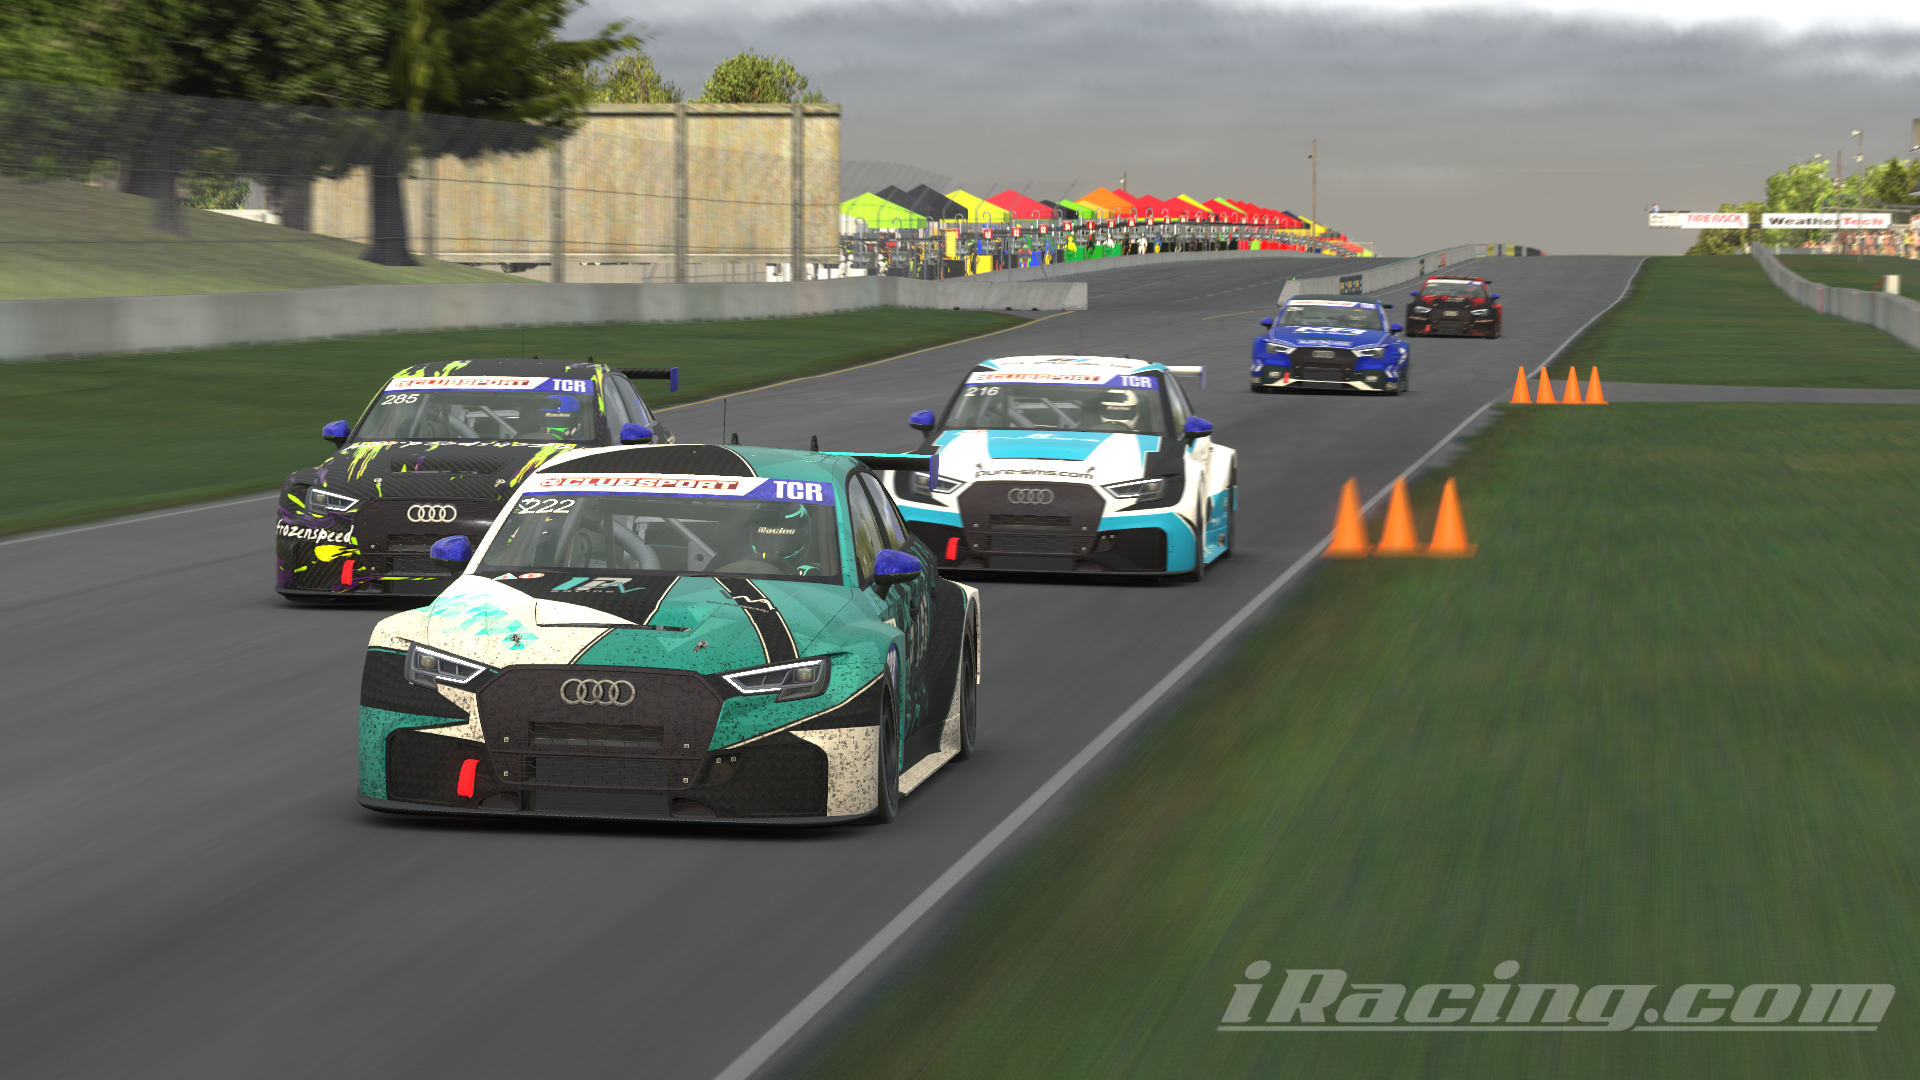 TCR IVRA defend